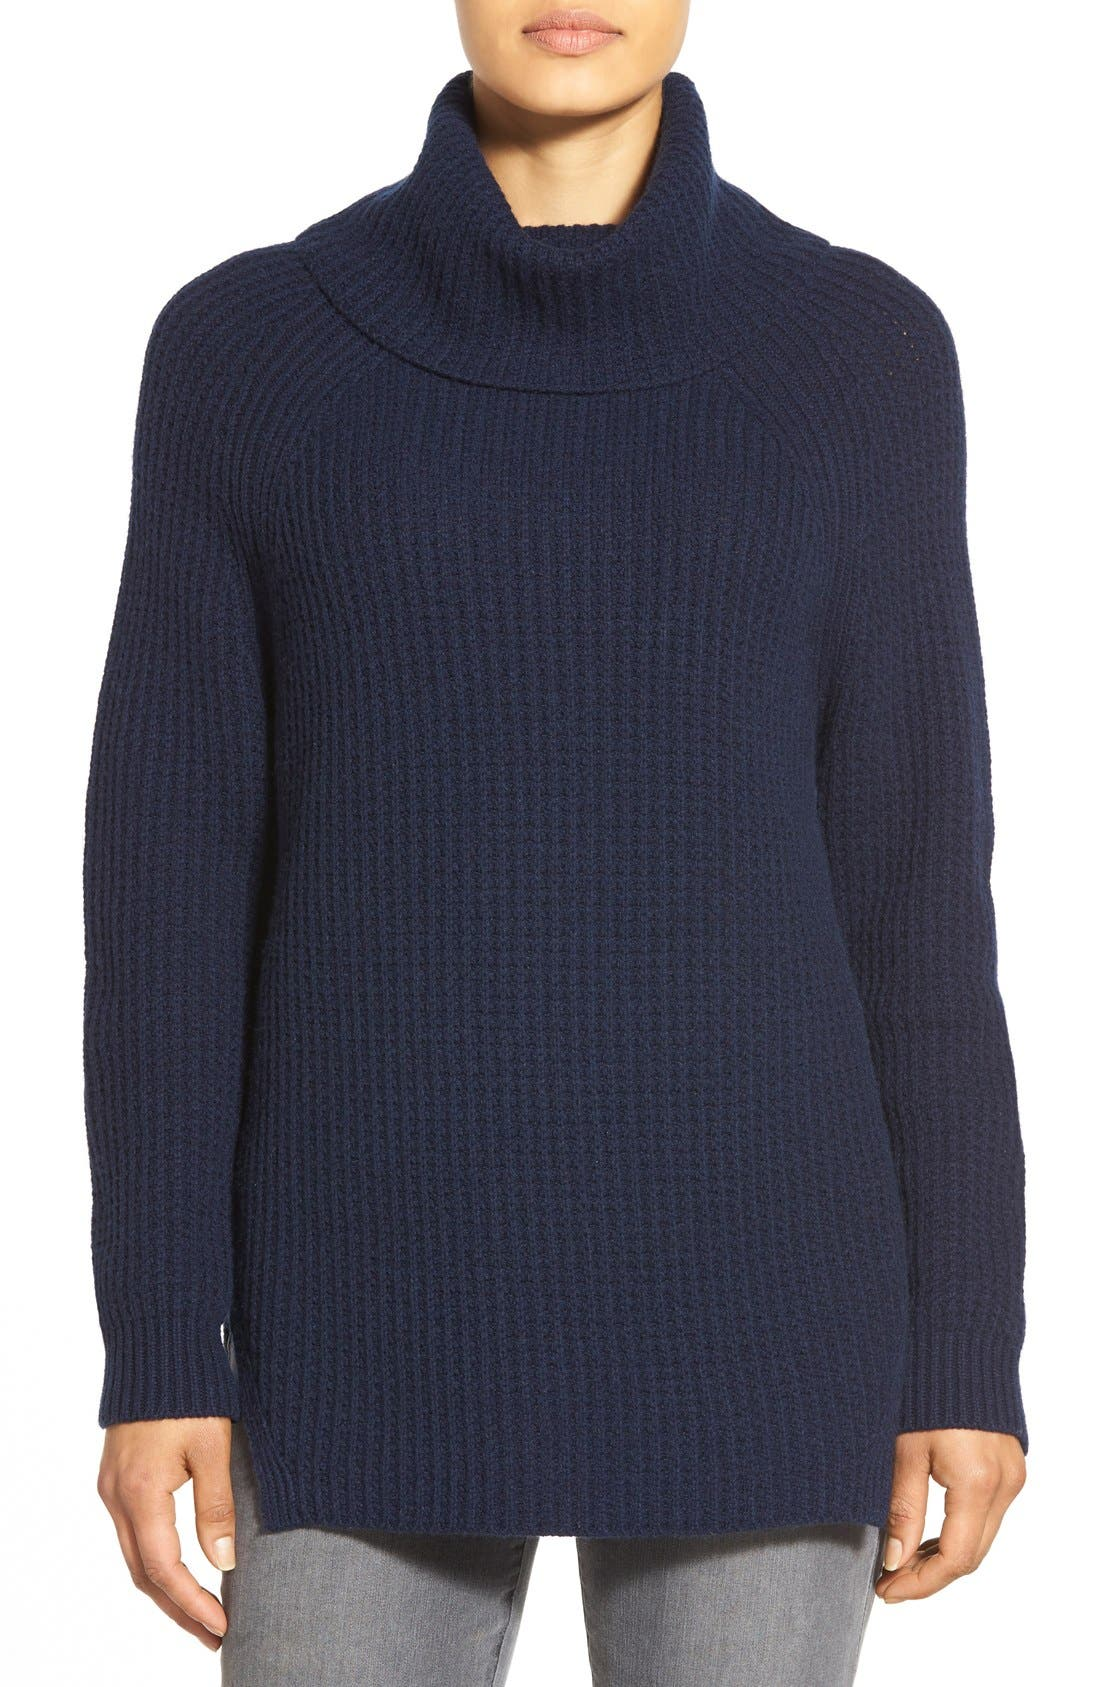 Alternate Image 1 Selected - Nordstrom Collection Wool & Cashmere Turtleneck Sweater